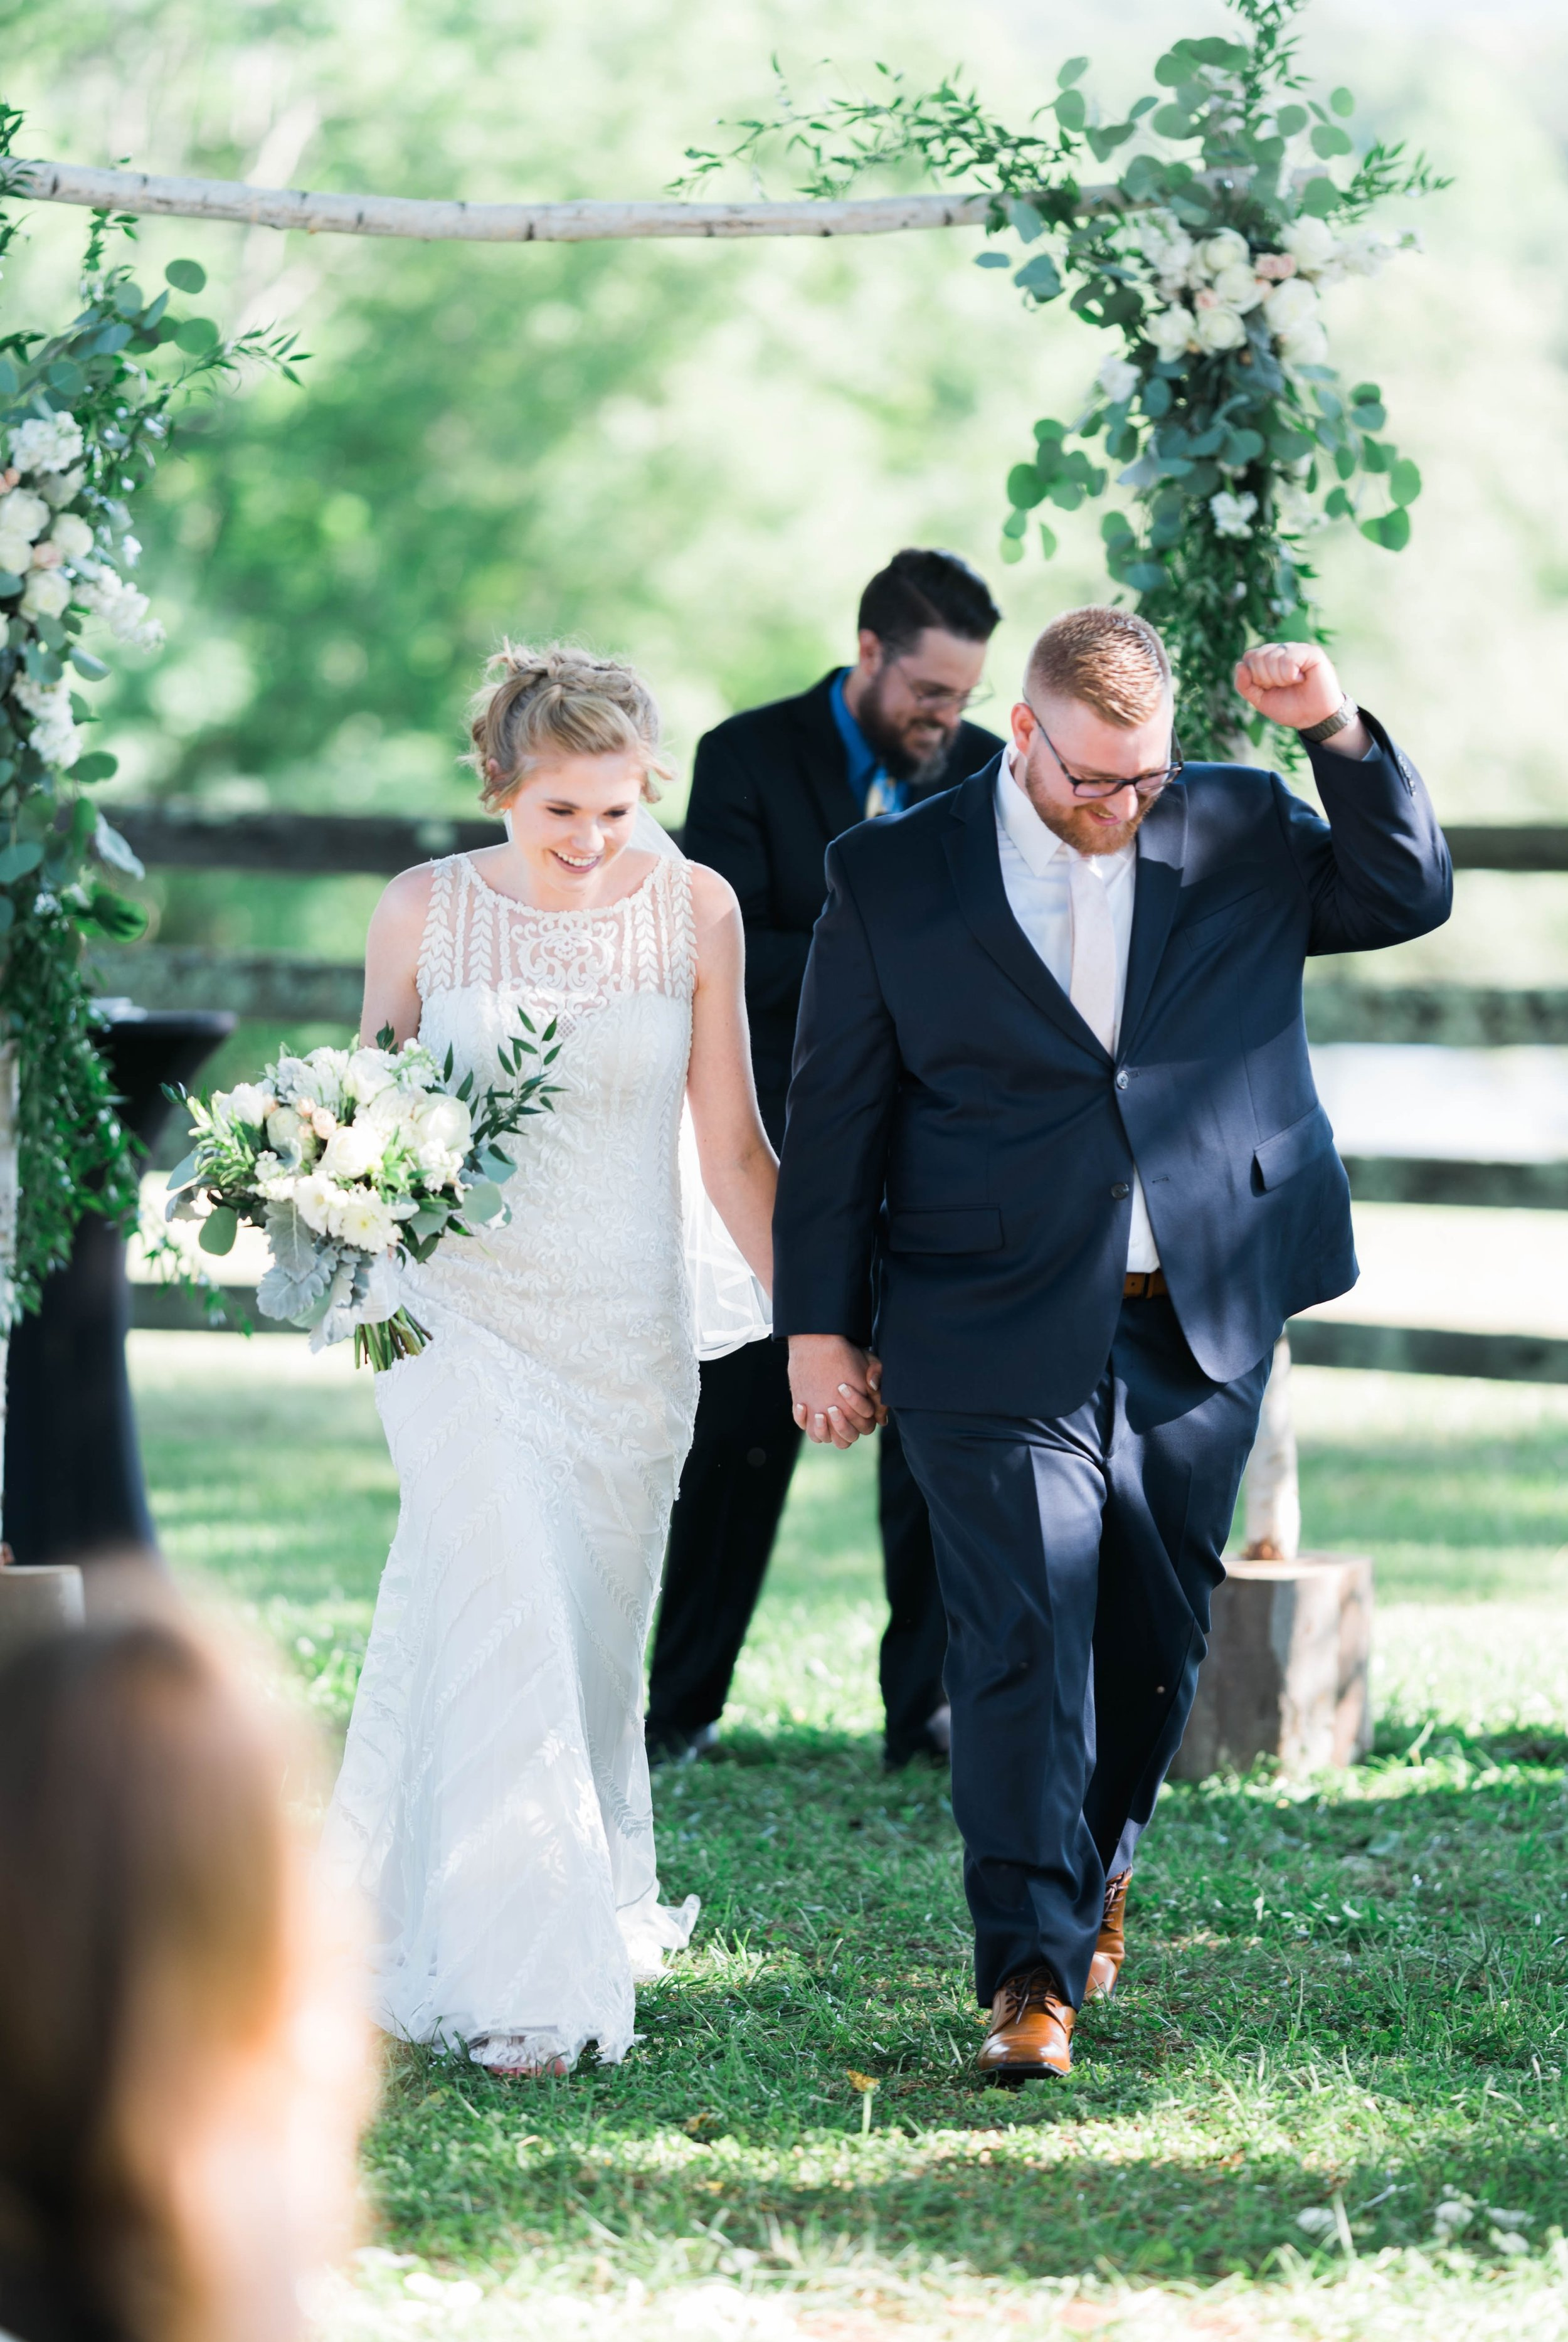 SorellaFarms_VirginiaWeddingPhotographer_BarnWedding_Lynchburgweddingphotographer_DanielleTyler 2.jpg